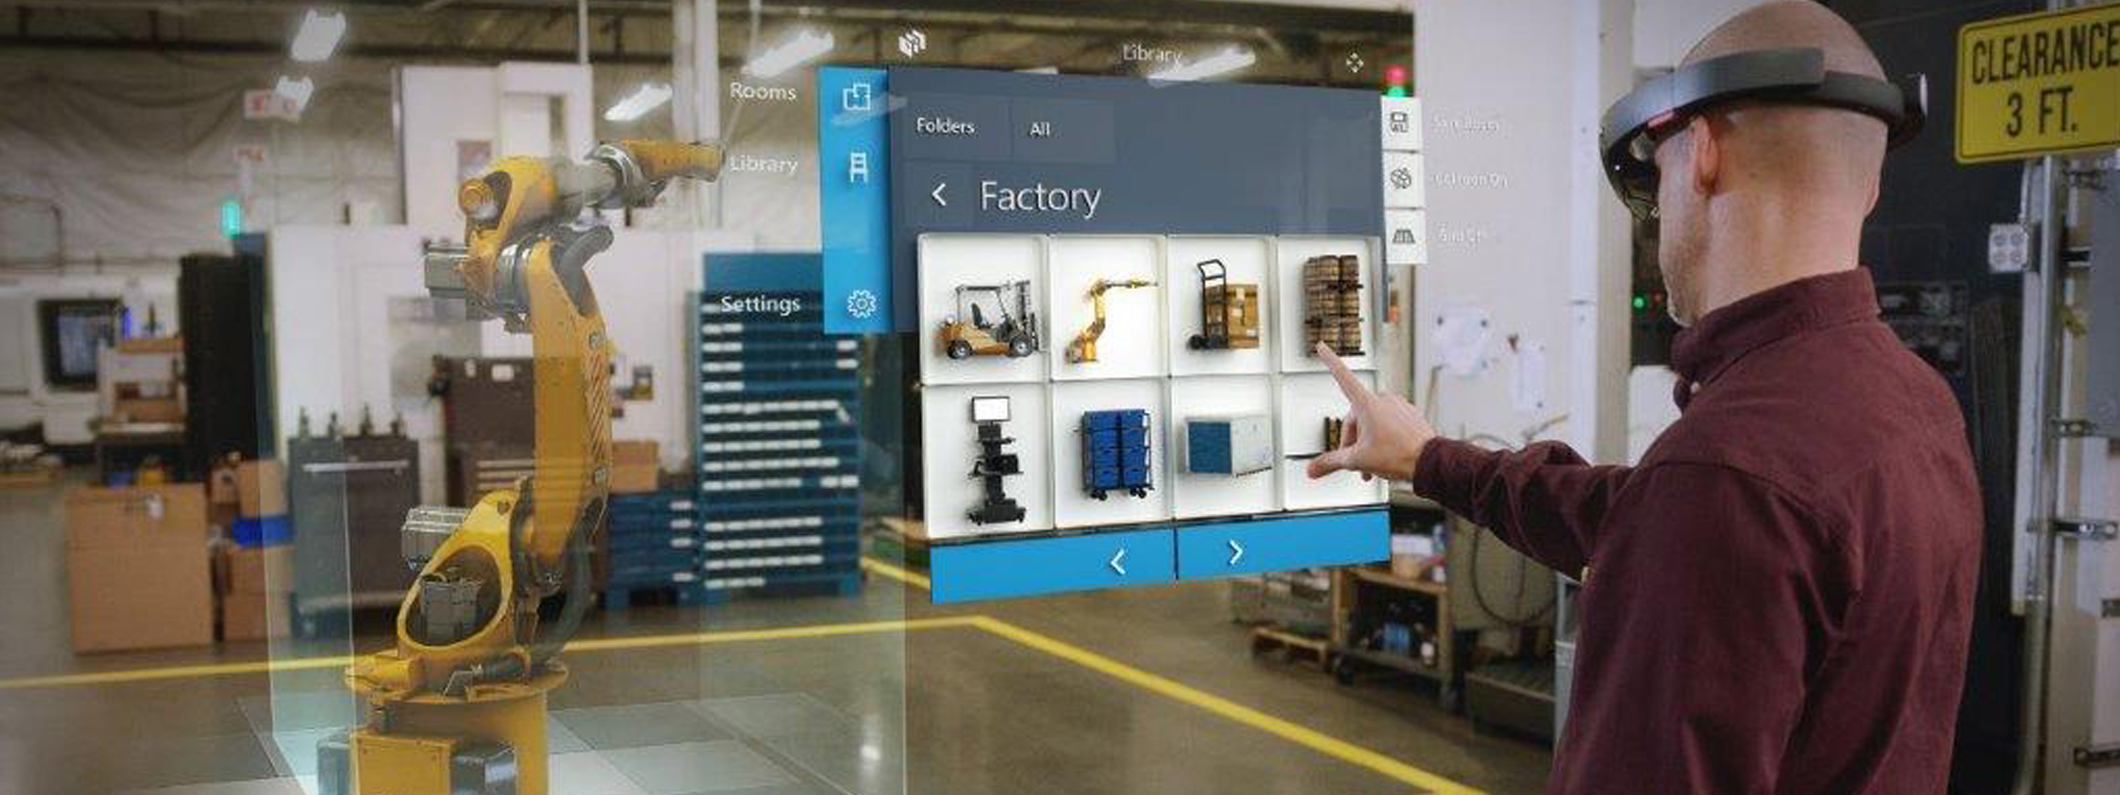 A worker wearing HoloLens uses Microsoft Layout to design space in the real-world, moving and resizing 3D models on the factory floor